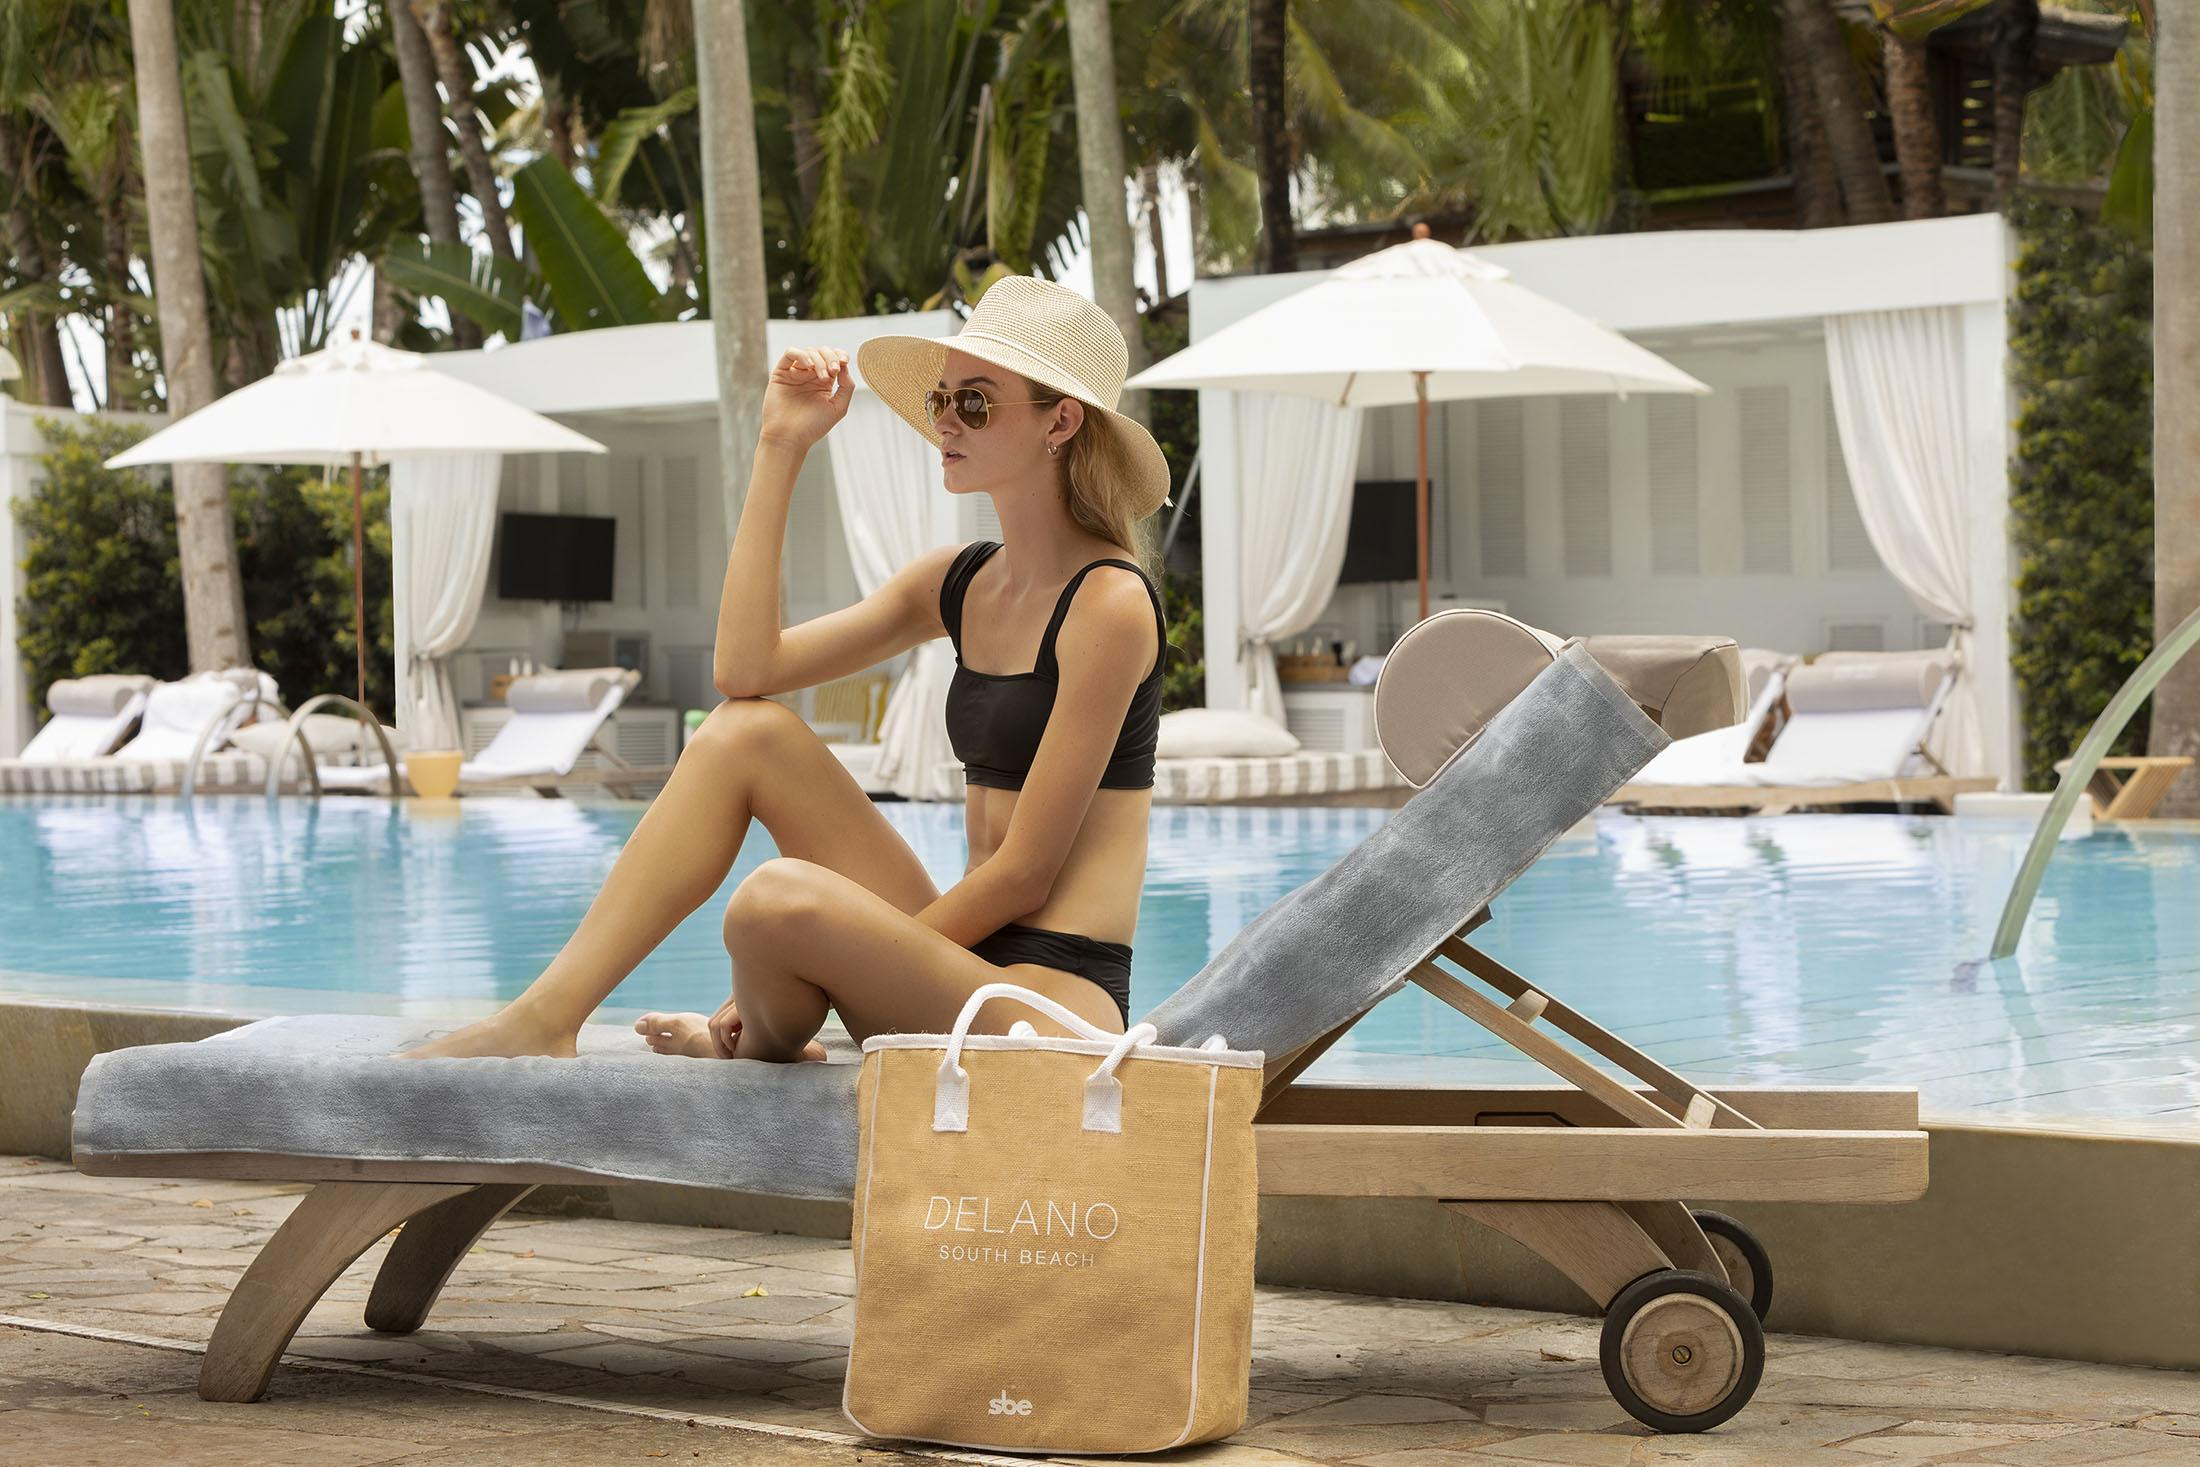 Woman in black swim suit and large hat lounges by pool